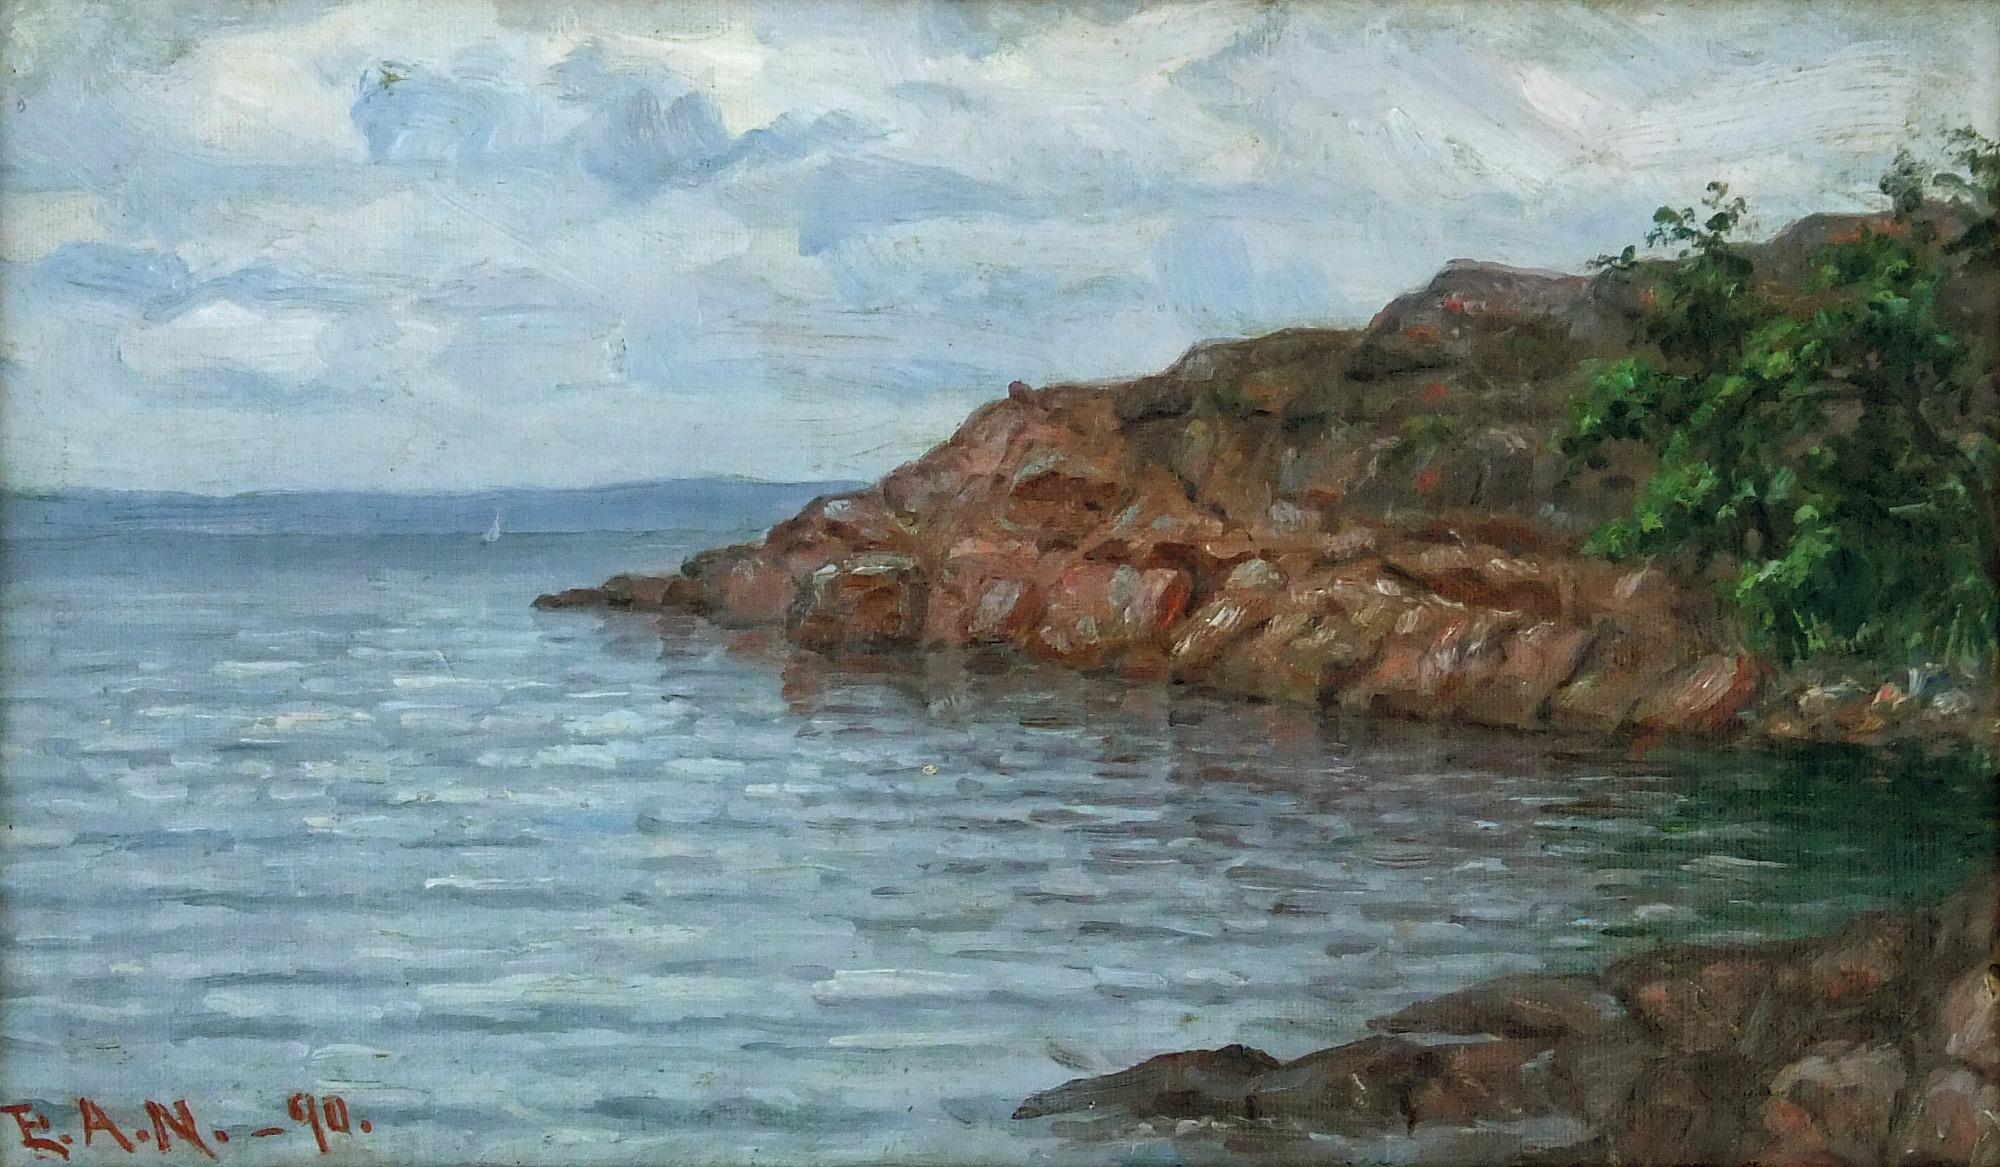 Elin Alfhild Nordlund, The Lumparn Sea, 1890 oil